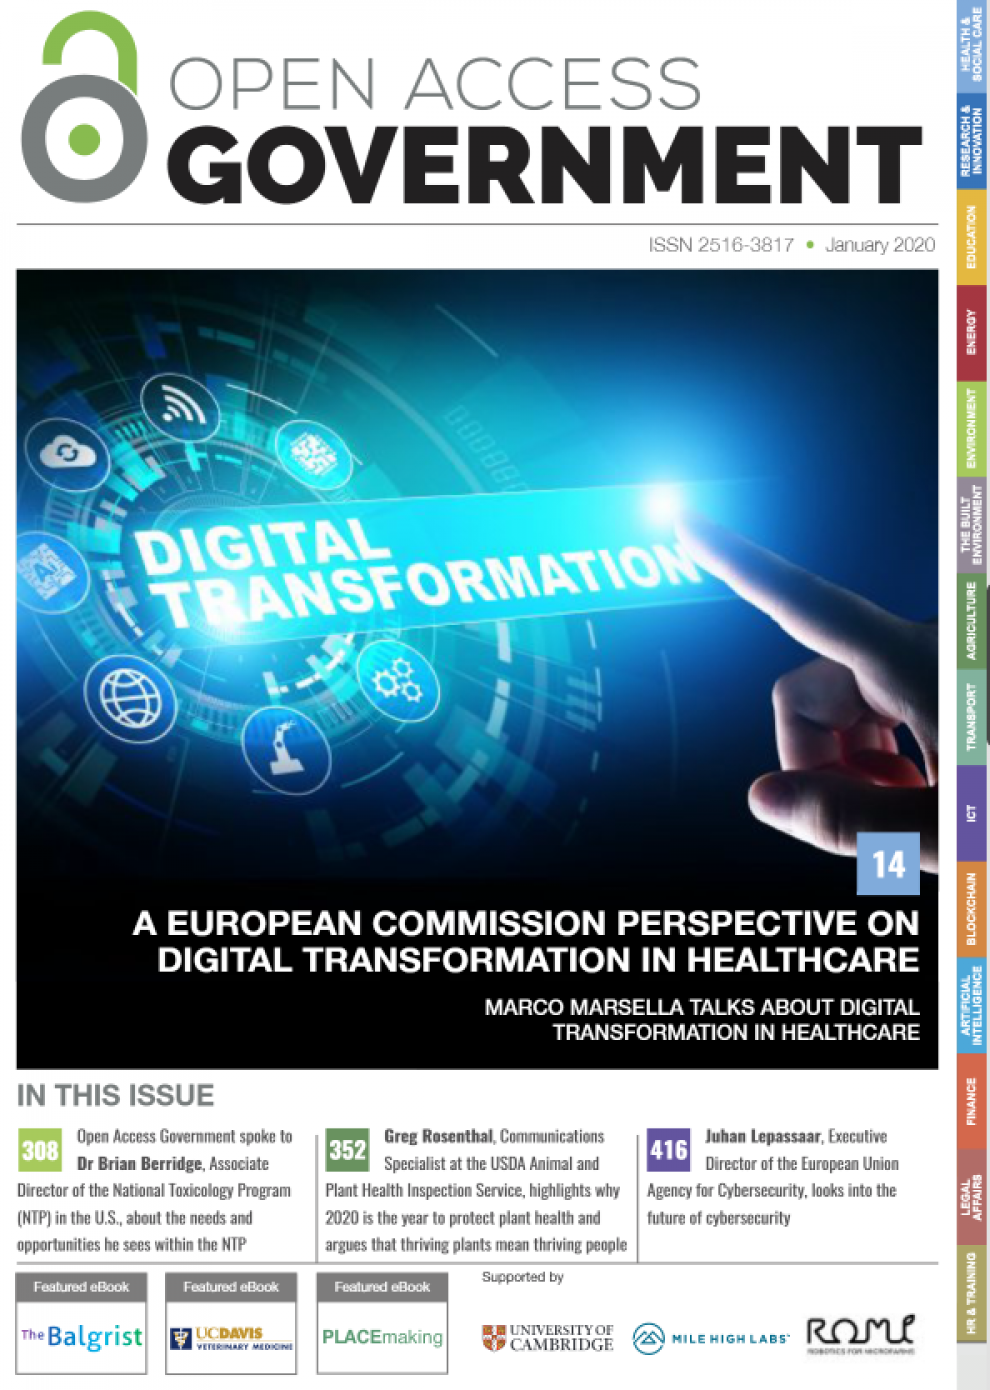 Open Access Government Jan 2020 cover